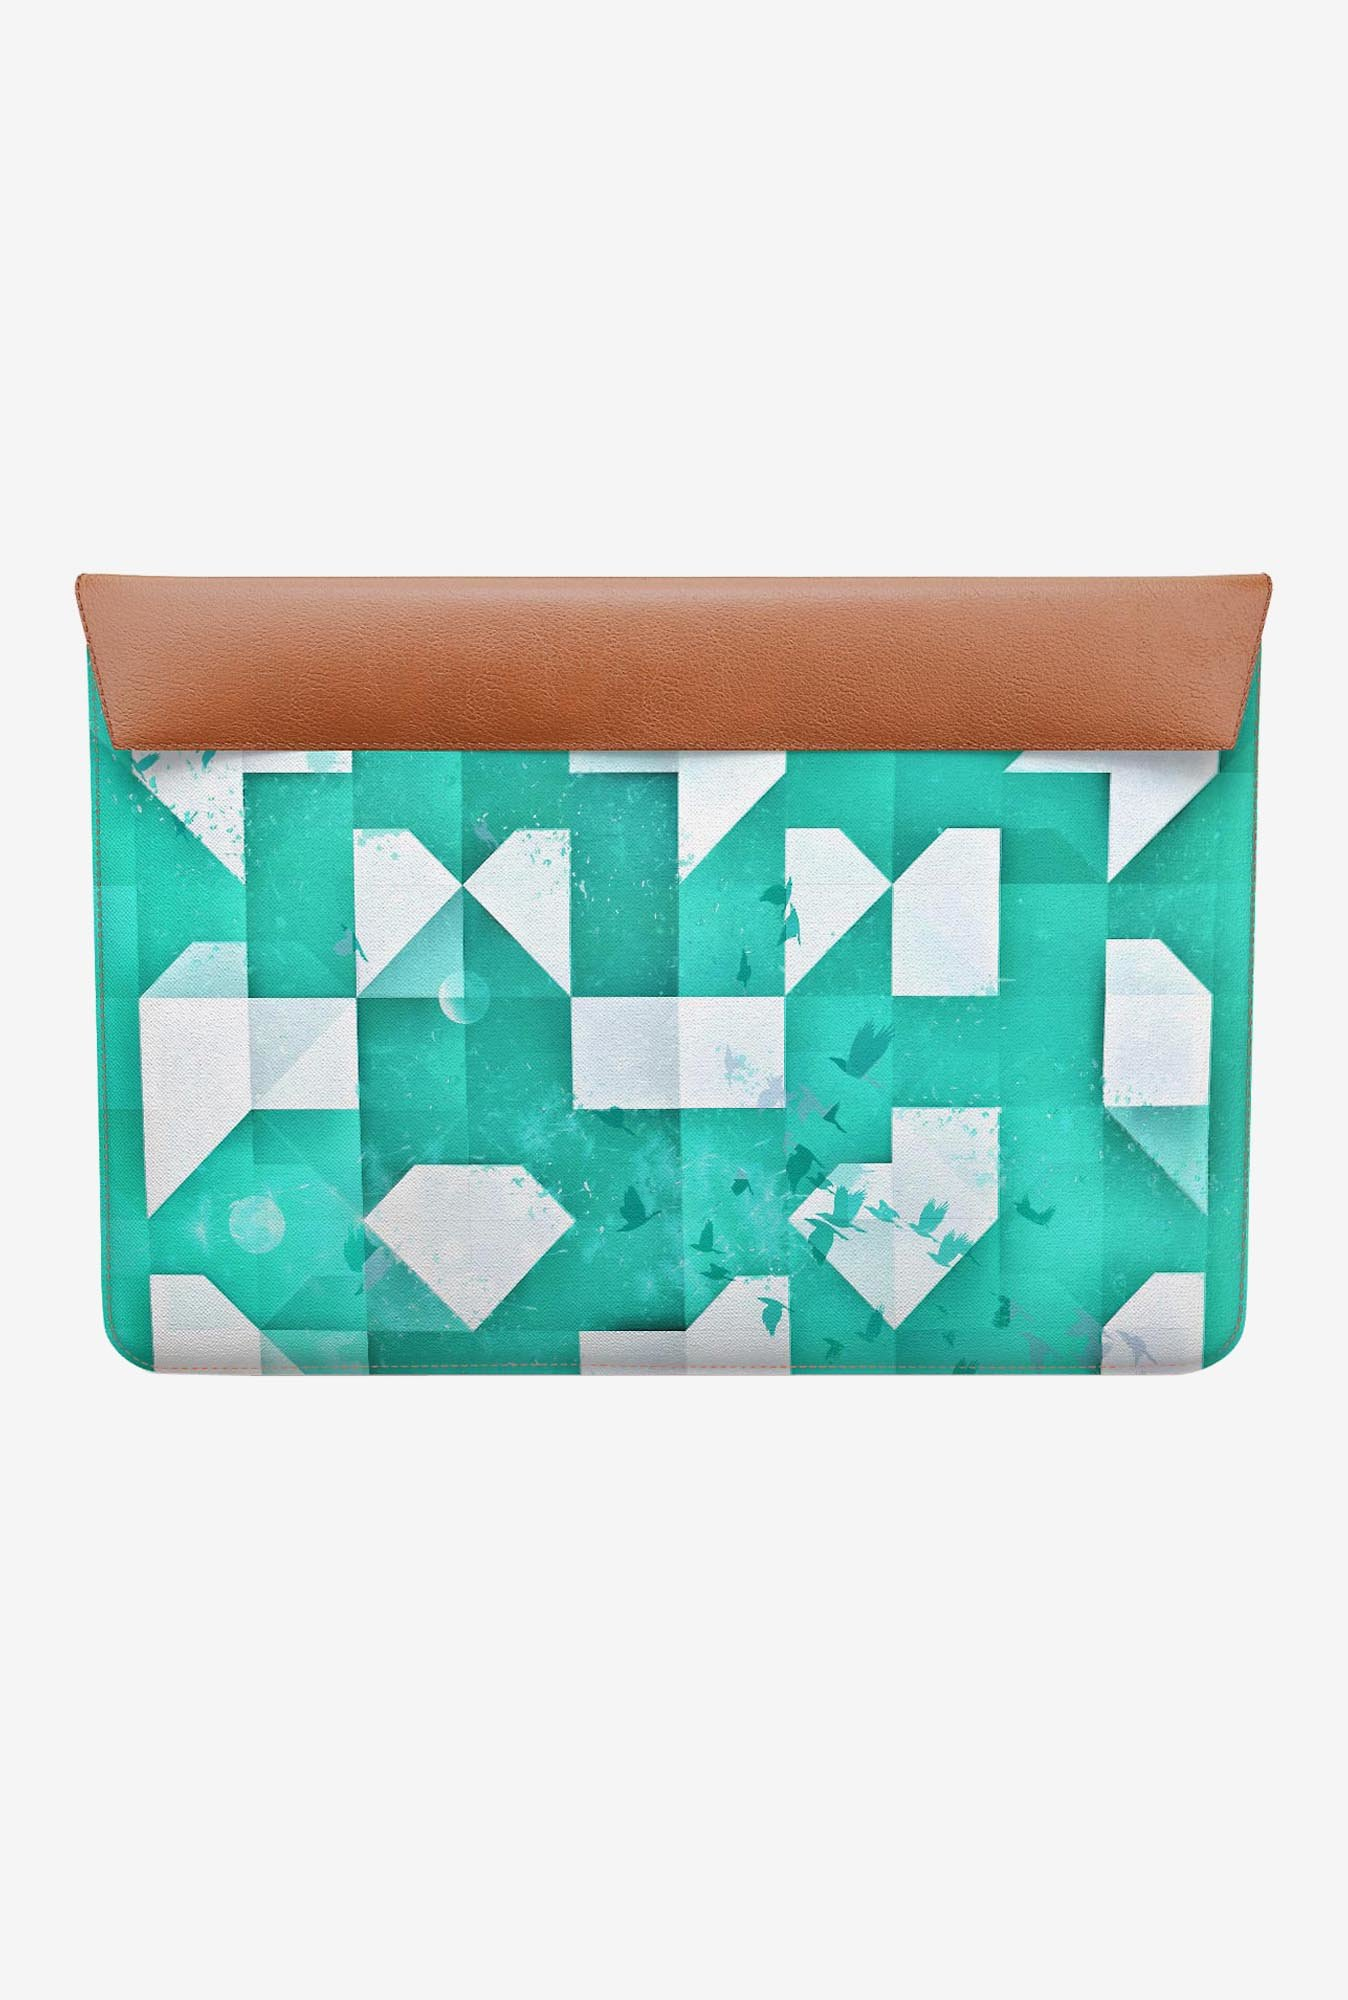 "DailyObjects Pypyr Glyczyr Macbook Air 11"" Envelope Sleeve"